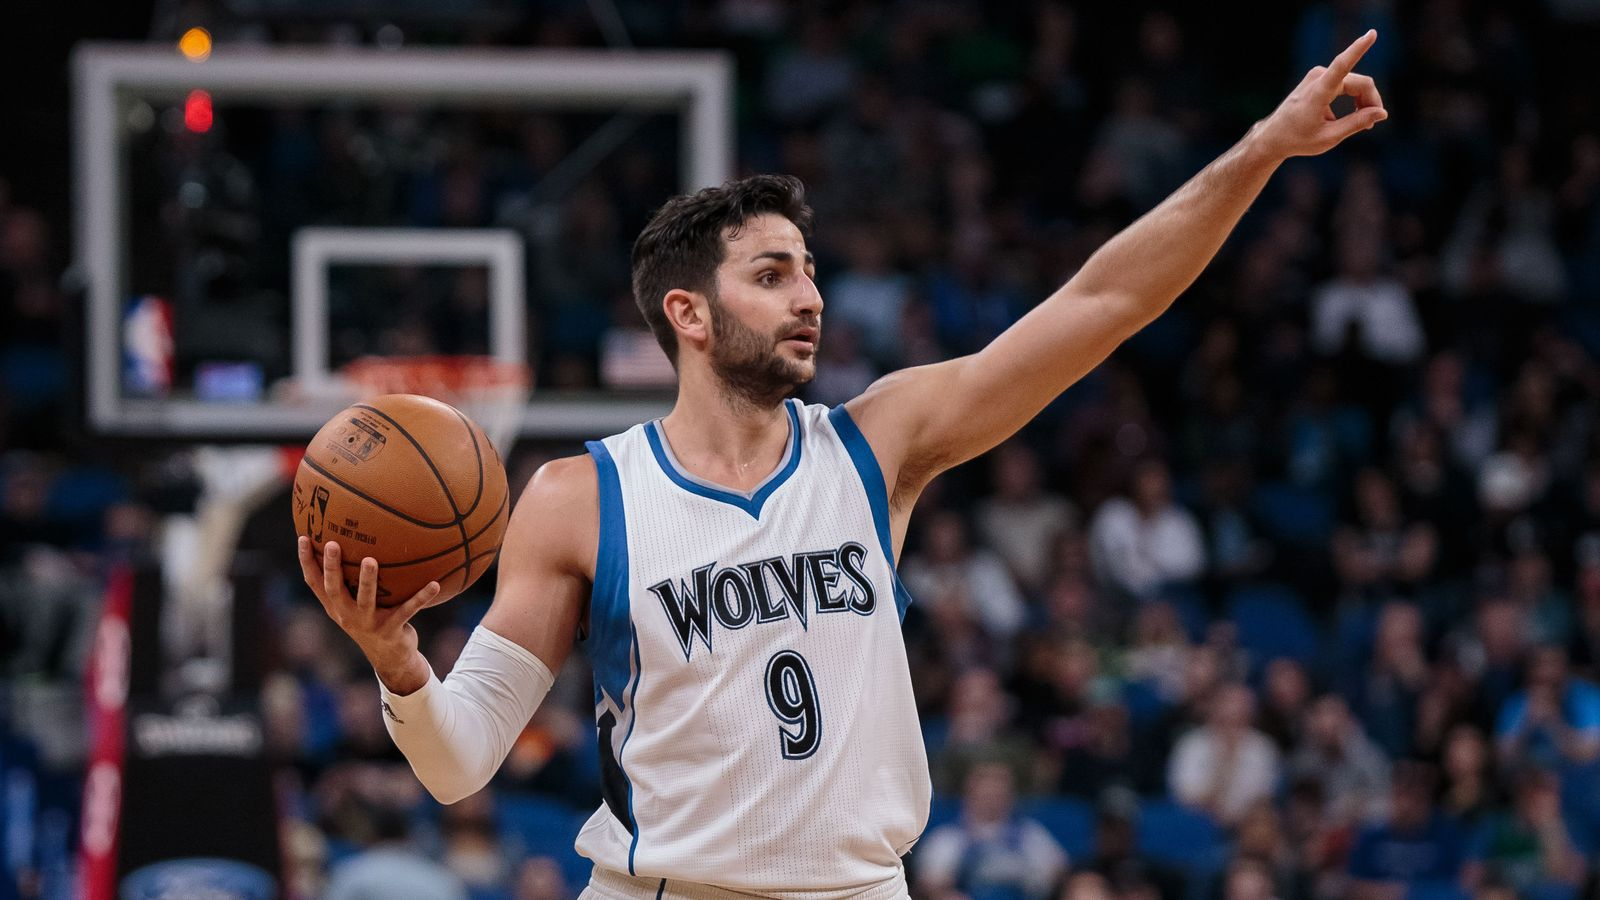 Ricky Rubio set a Timberwolves record with 10 assists in a ...